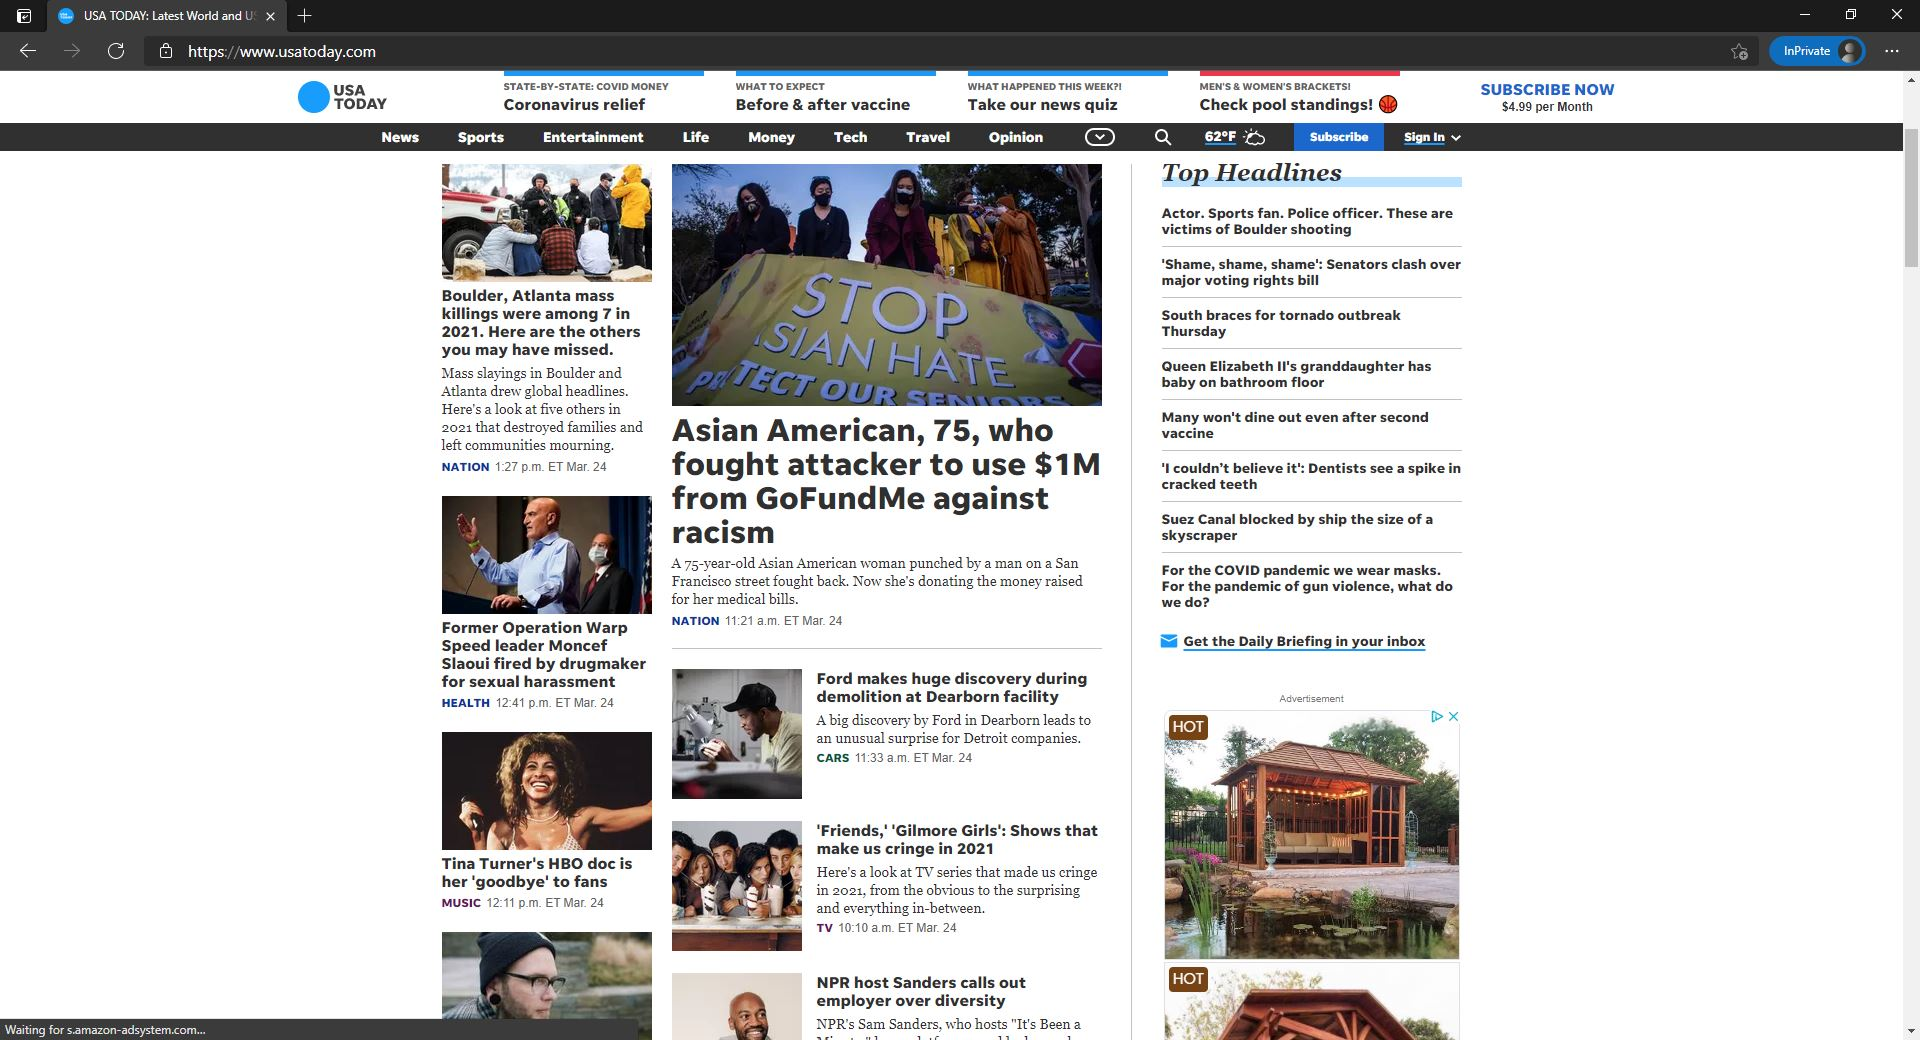 USA Today website homepage